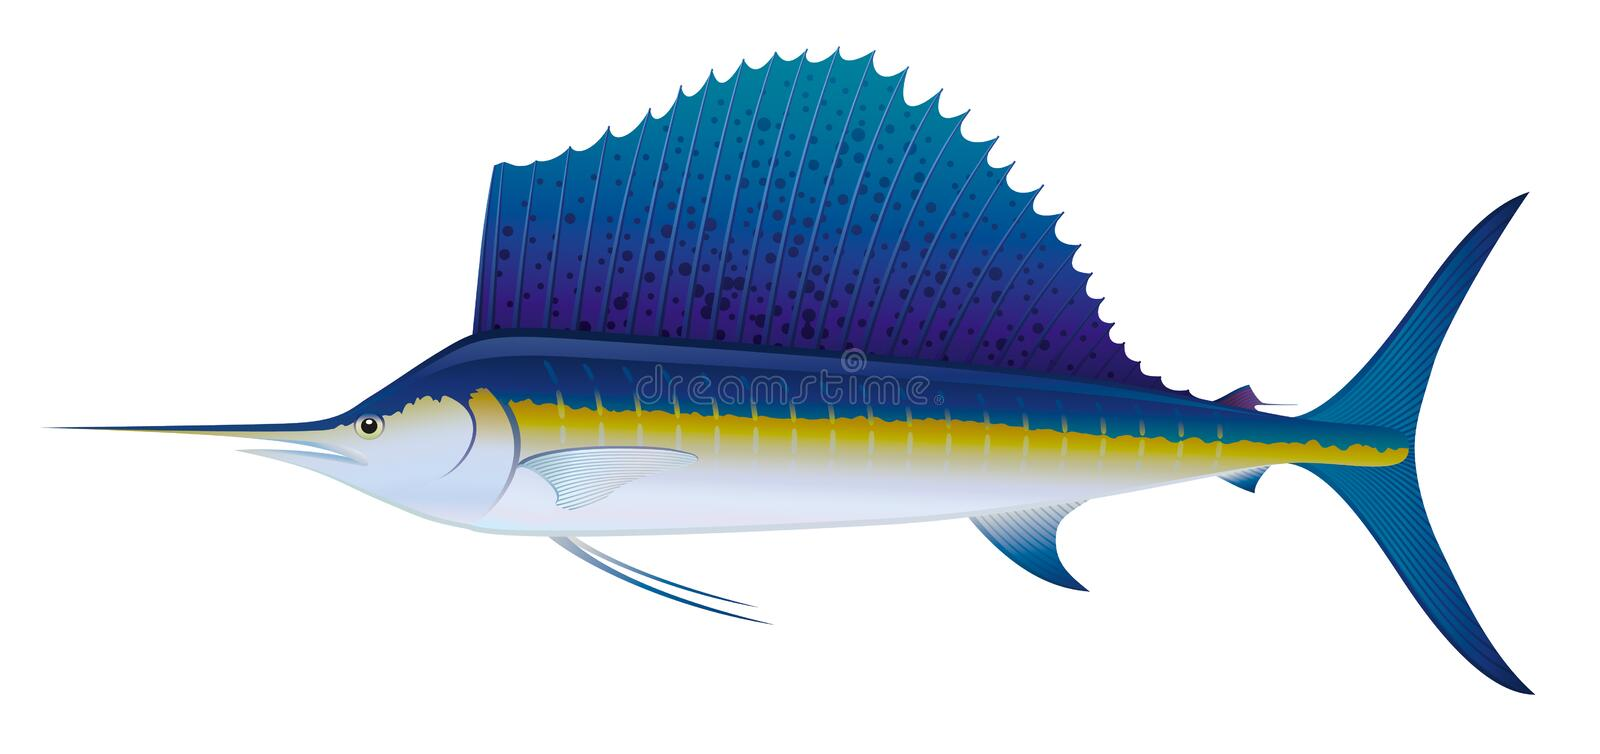 atlantisk sailfish vektor illustrationer